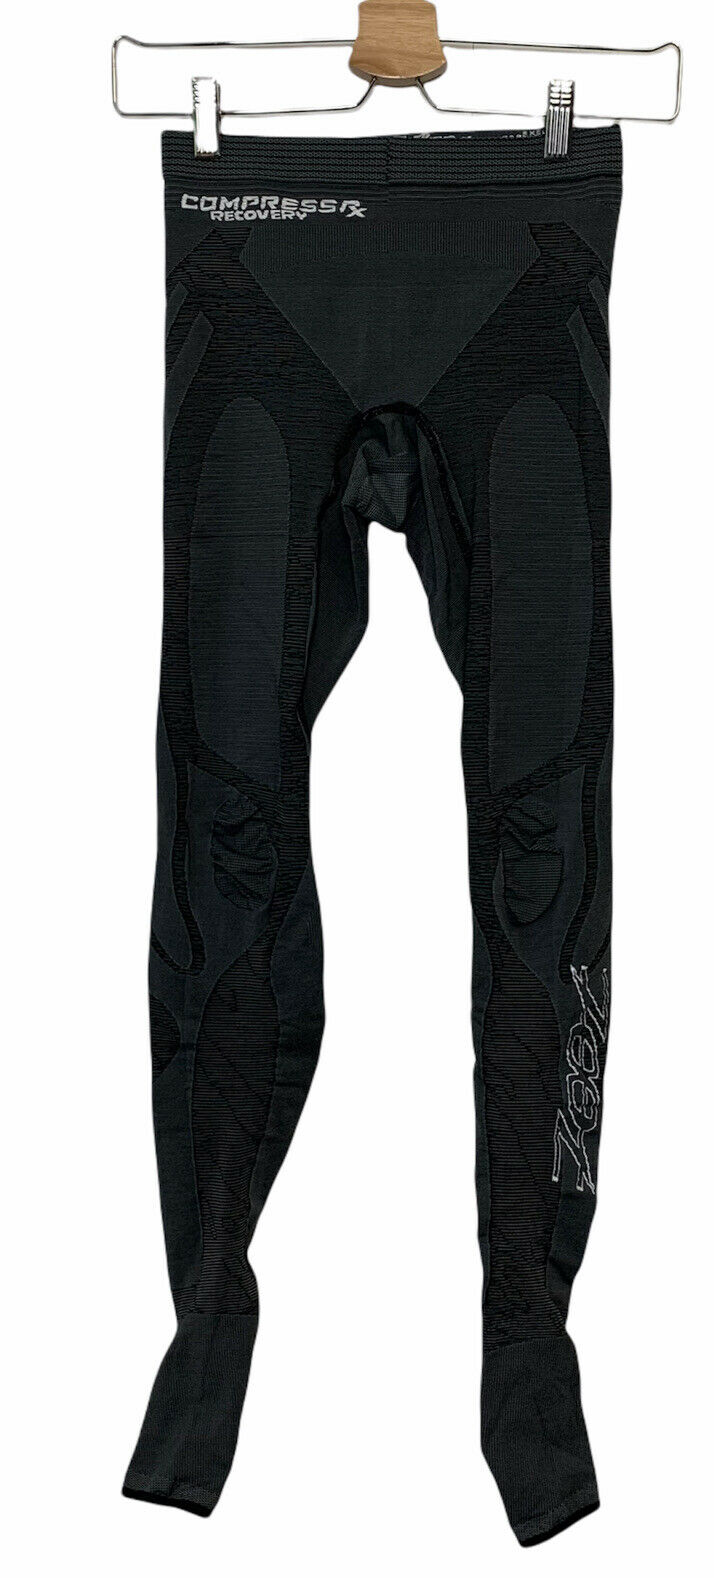 Zoot Compress RX Recovery Tights Unisex Size 0 Gray Compression Athletic Pants